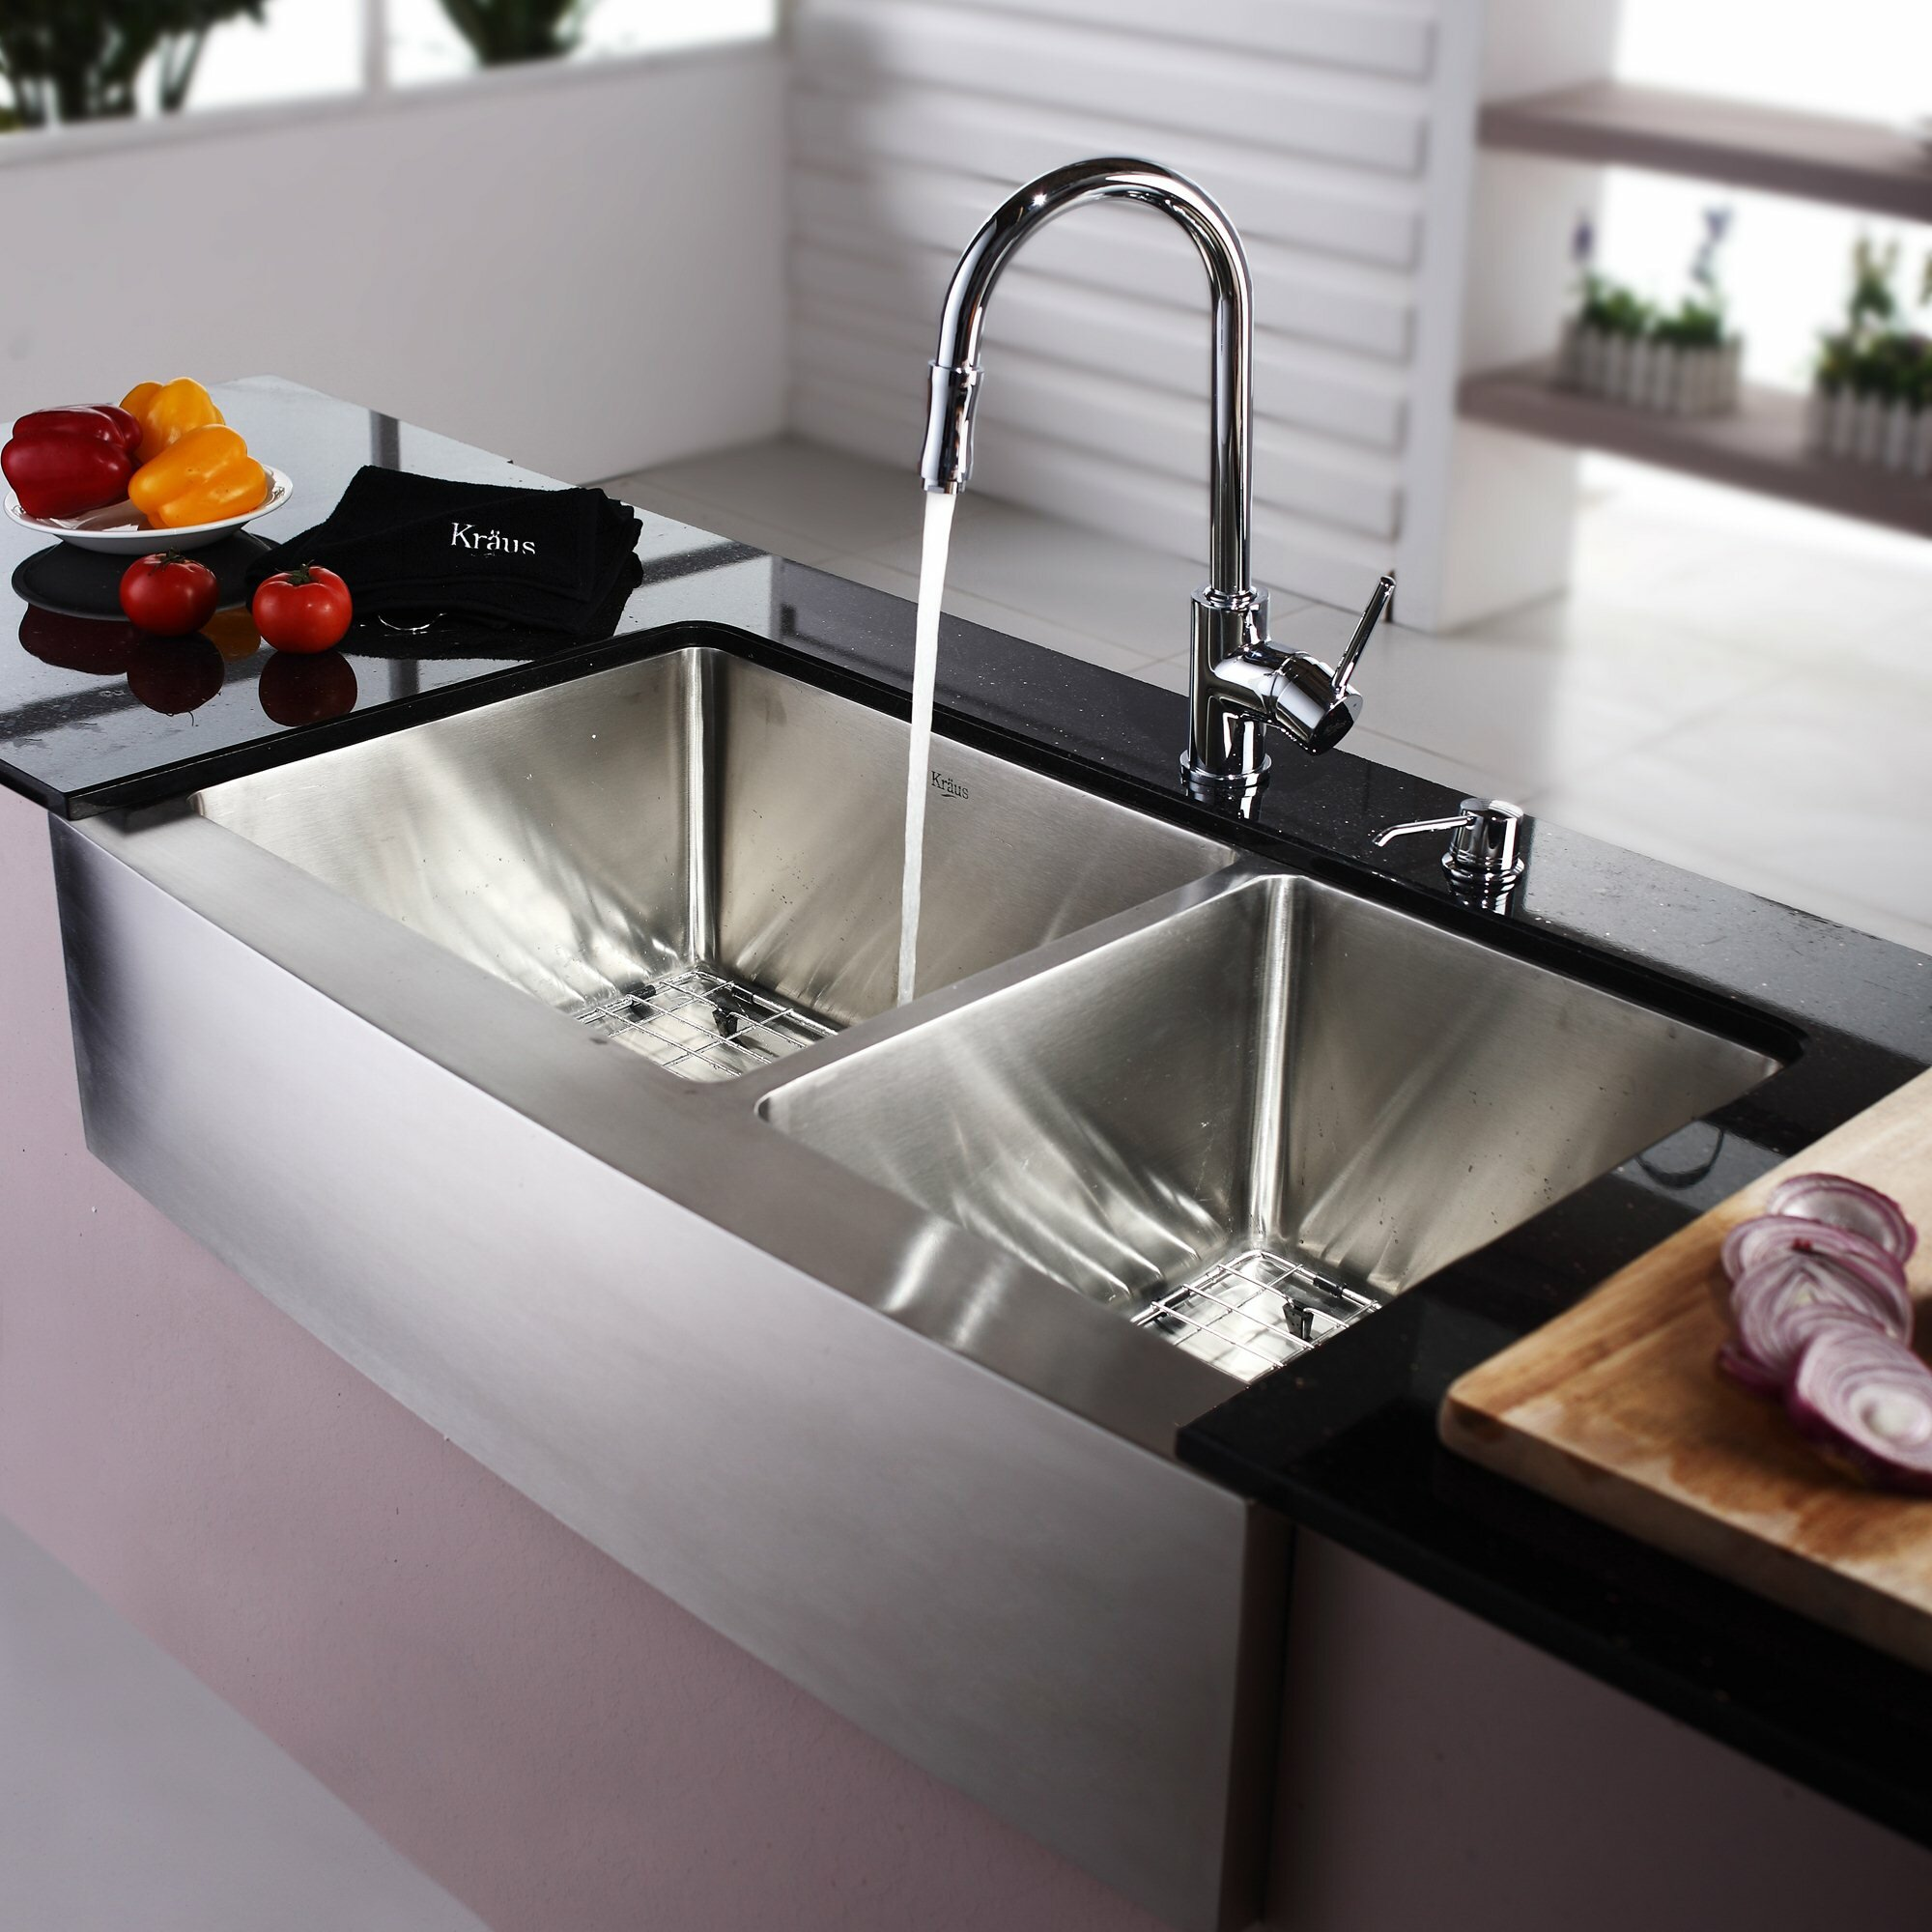 """25 Farm Sink Of Kitchen Lowes Double Chrome Kitchen Sink: Kraus 35.88"""" X 20.75"""" Farmhouse Double Bowl Kitchen Sink"""